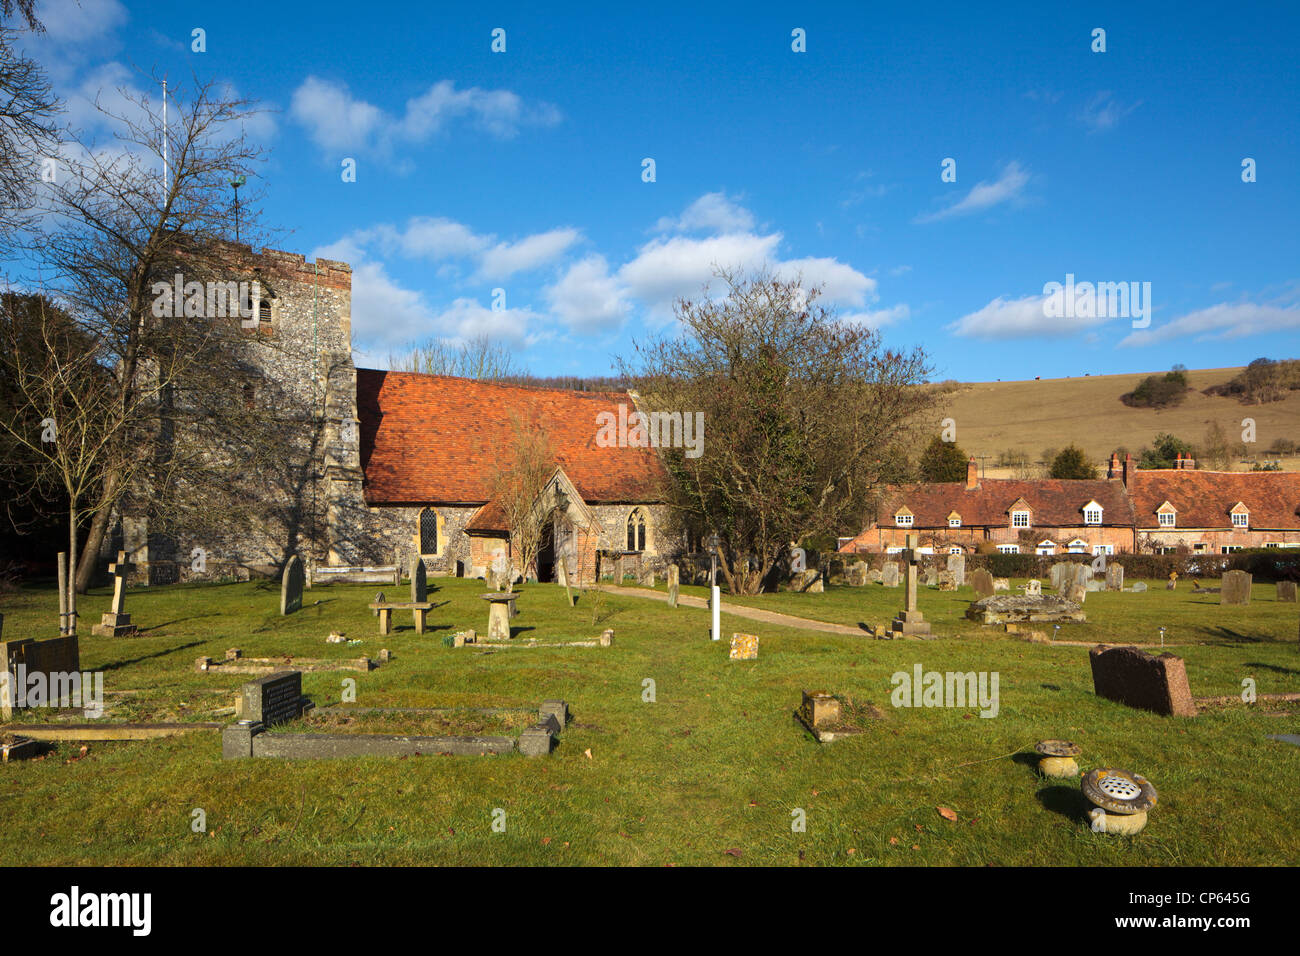 Turville Village Church in the Hambleden Valley between Marlow and Henley on Thames Chiltern Hills Buckinghamshire - Stock Image